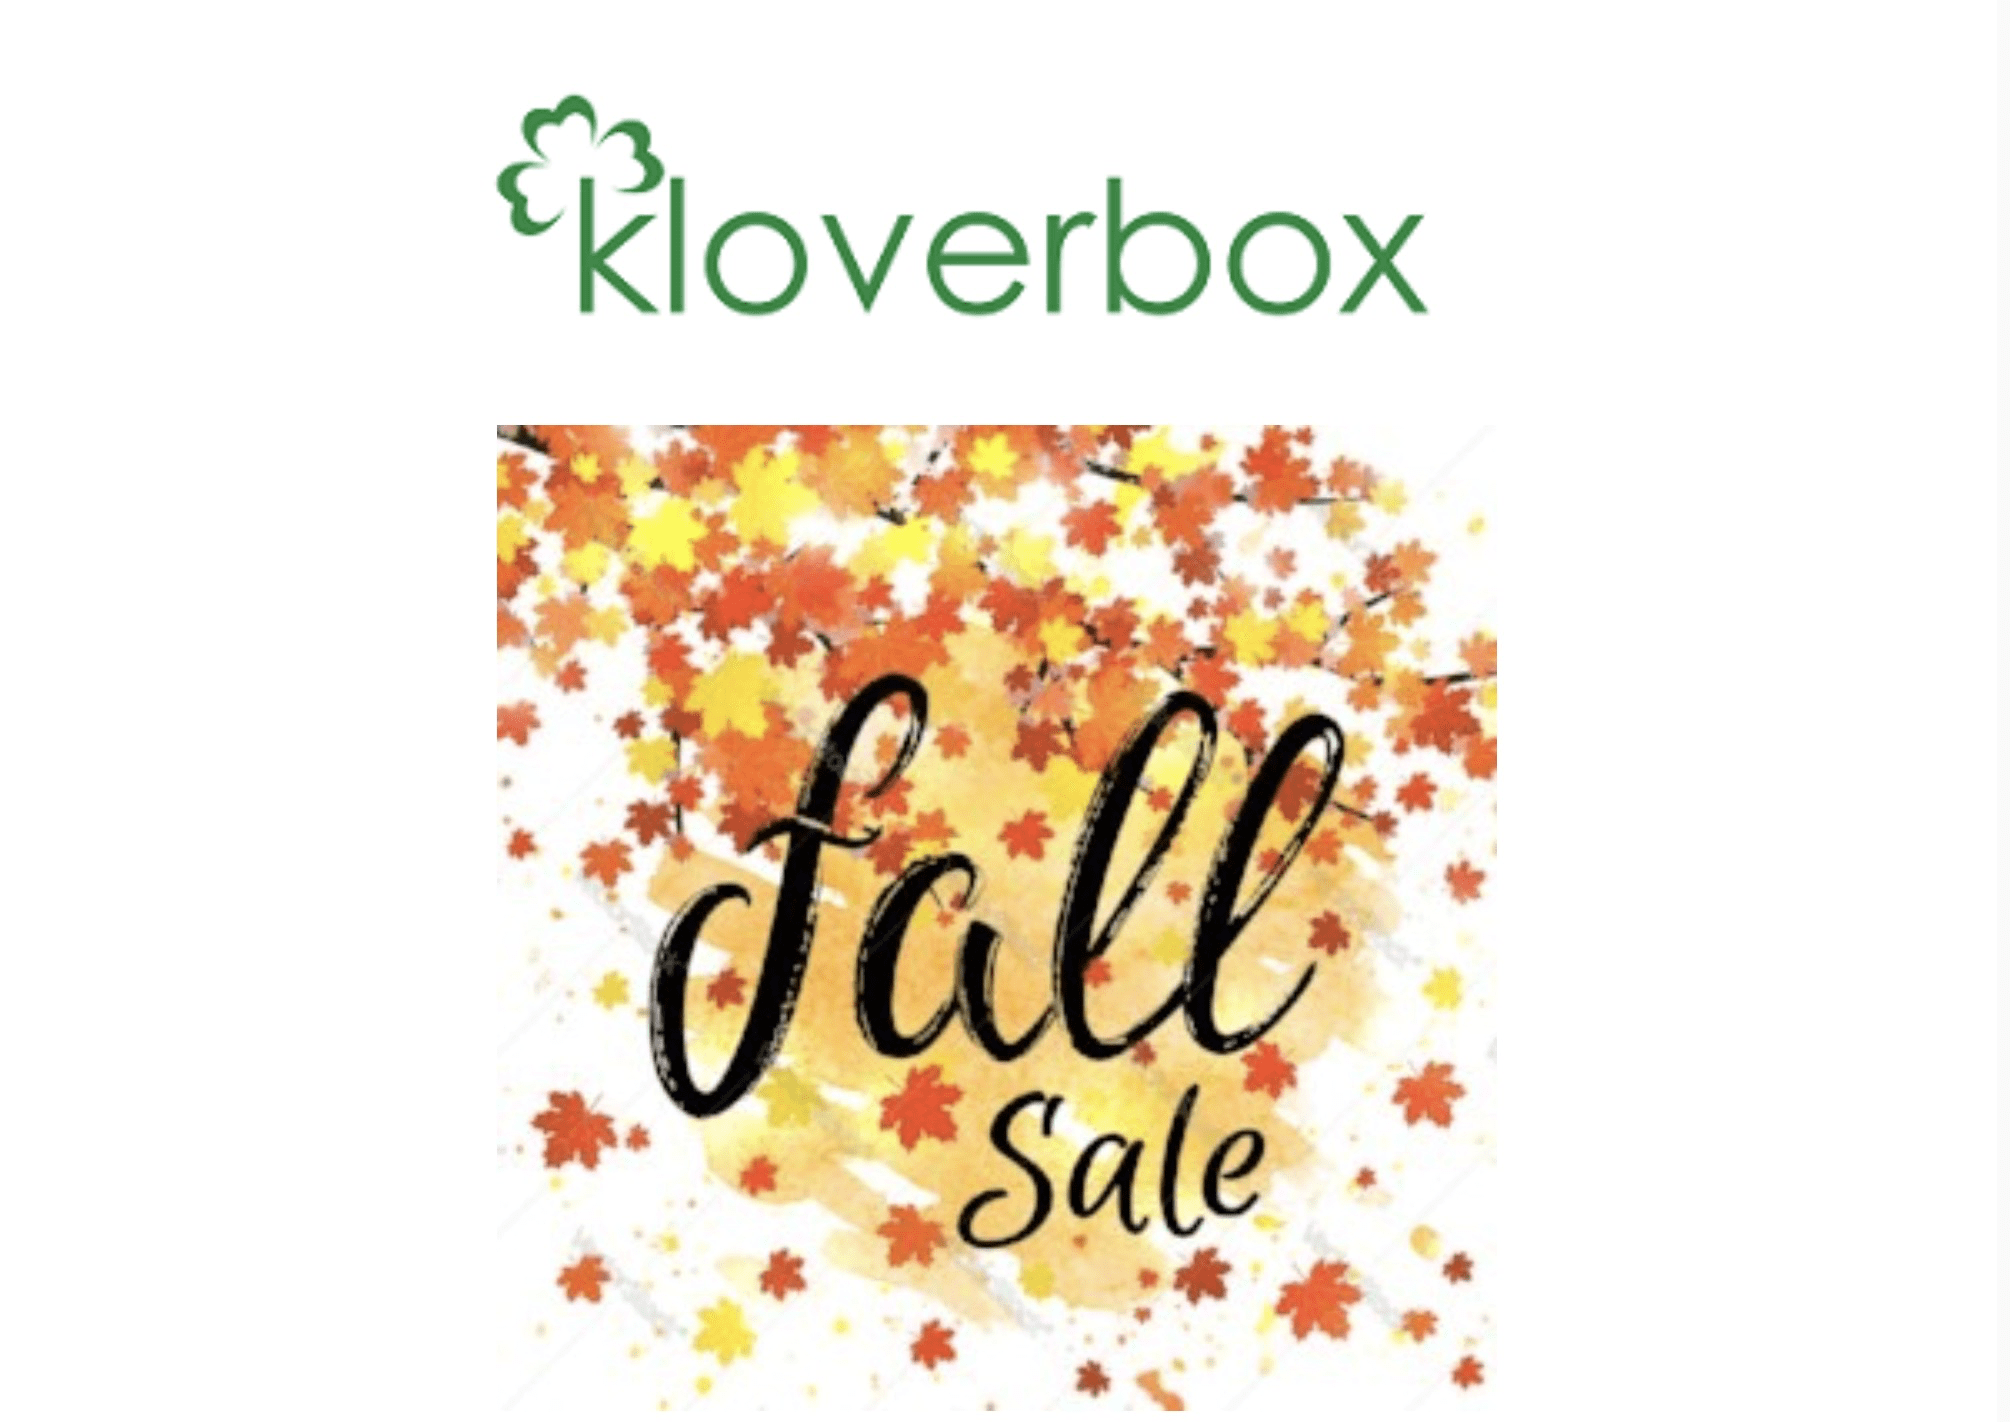 Kloverbox Fall Sale: Get 25% Off Any New Subscriptions!